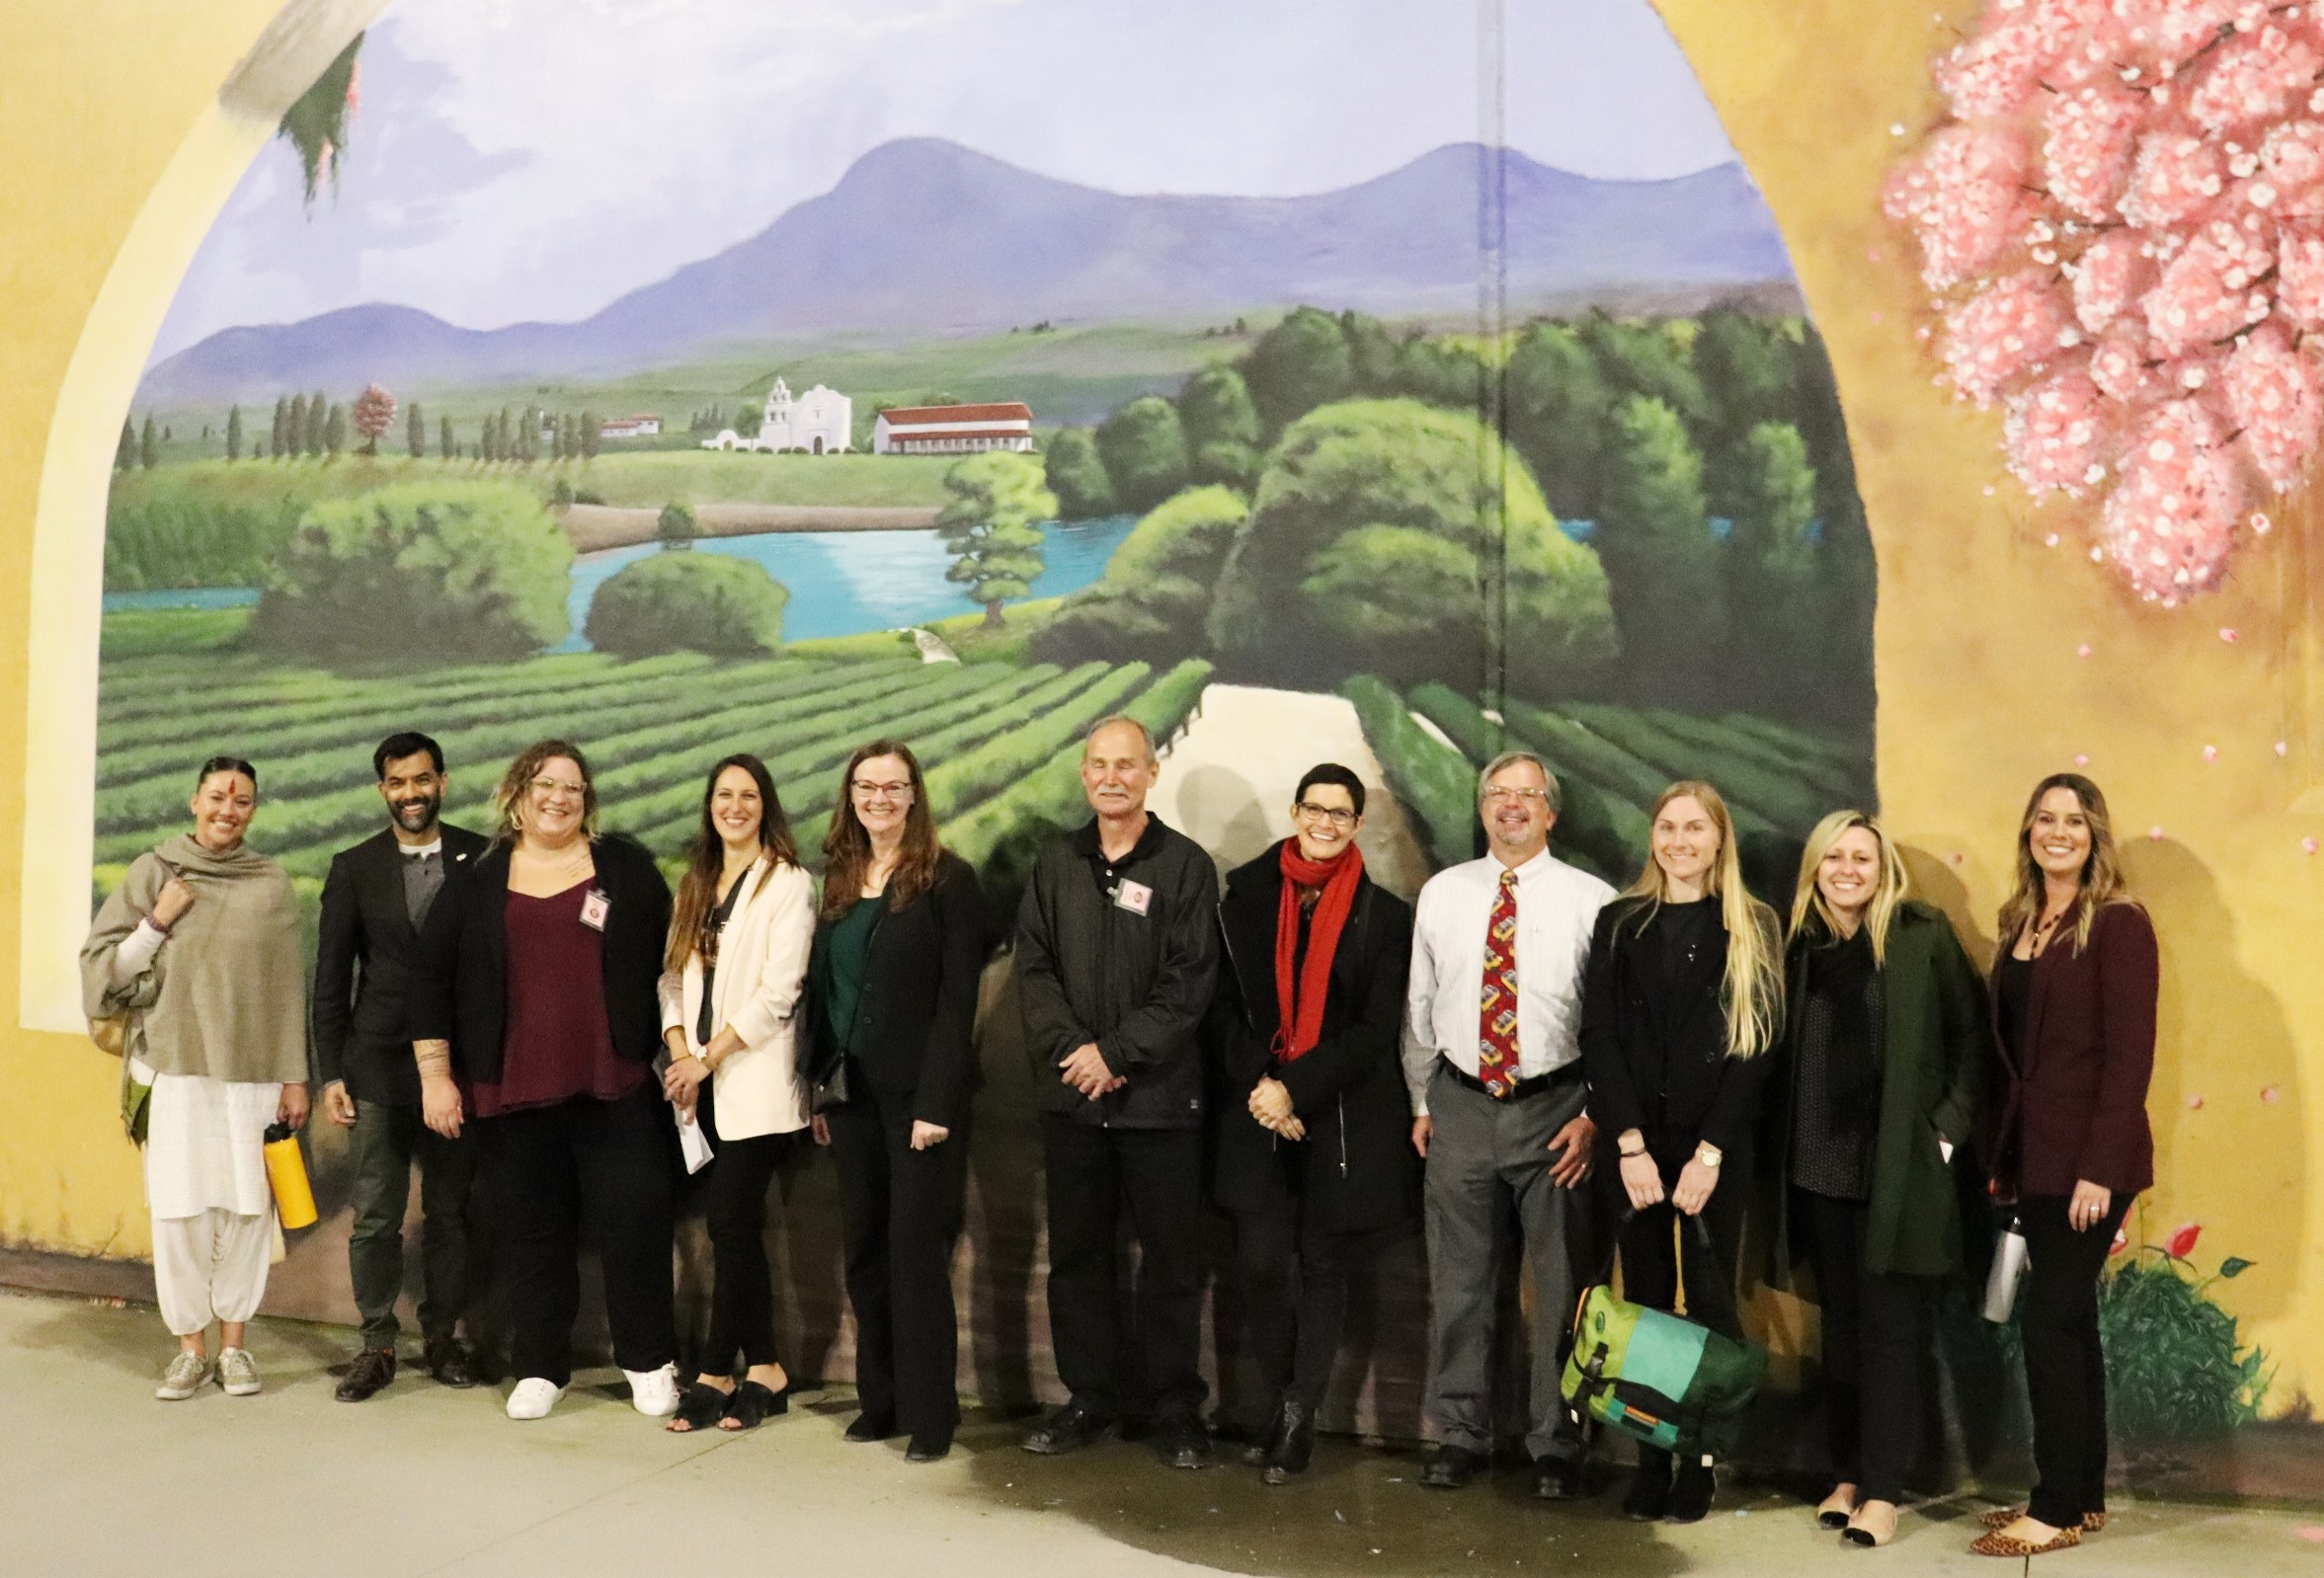 Men and women stand in front of a large mural depicting agriculture and a lake.